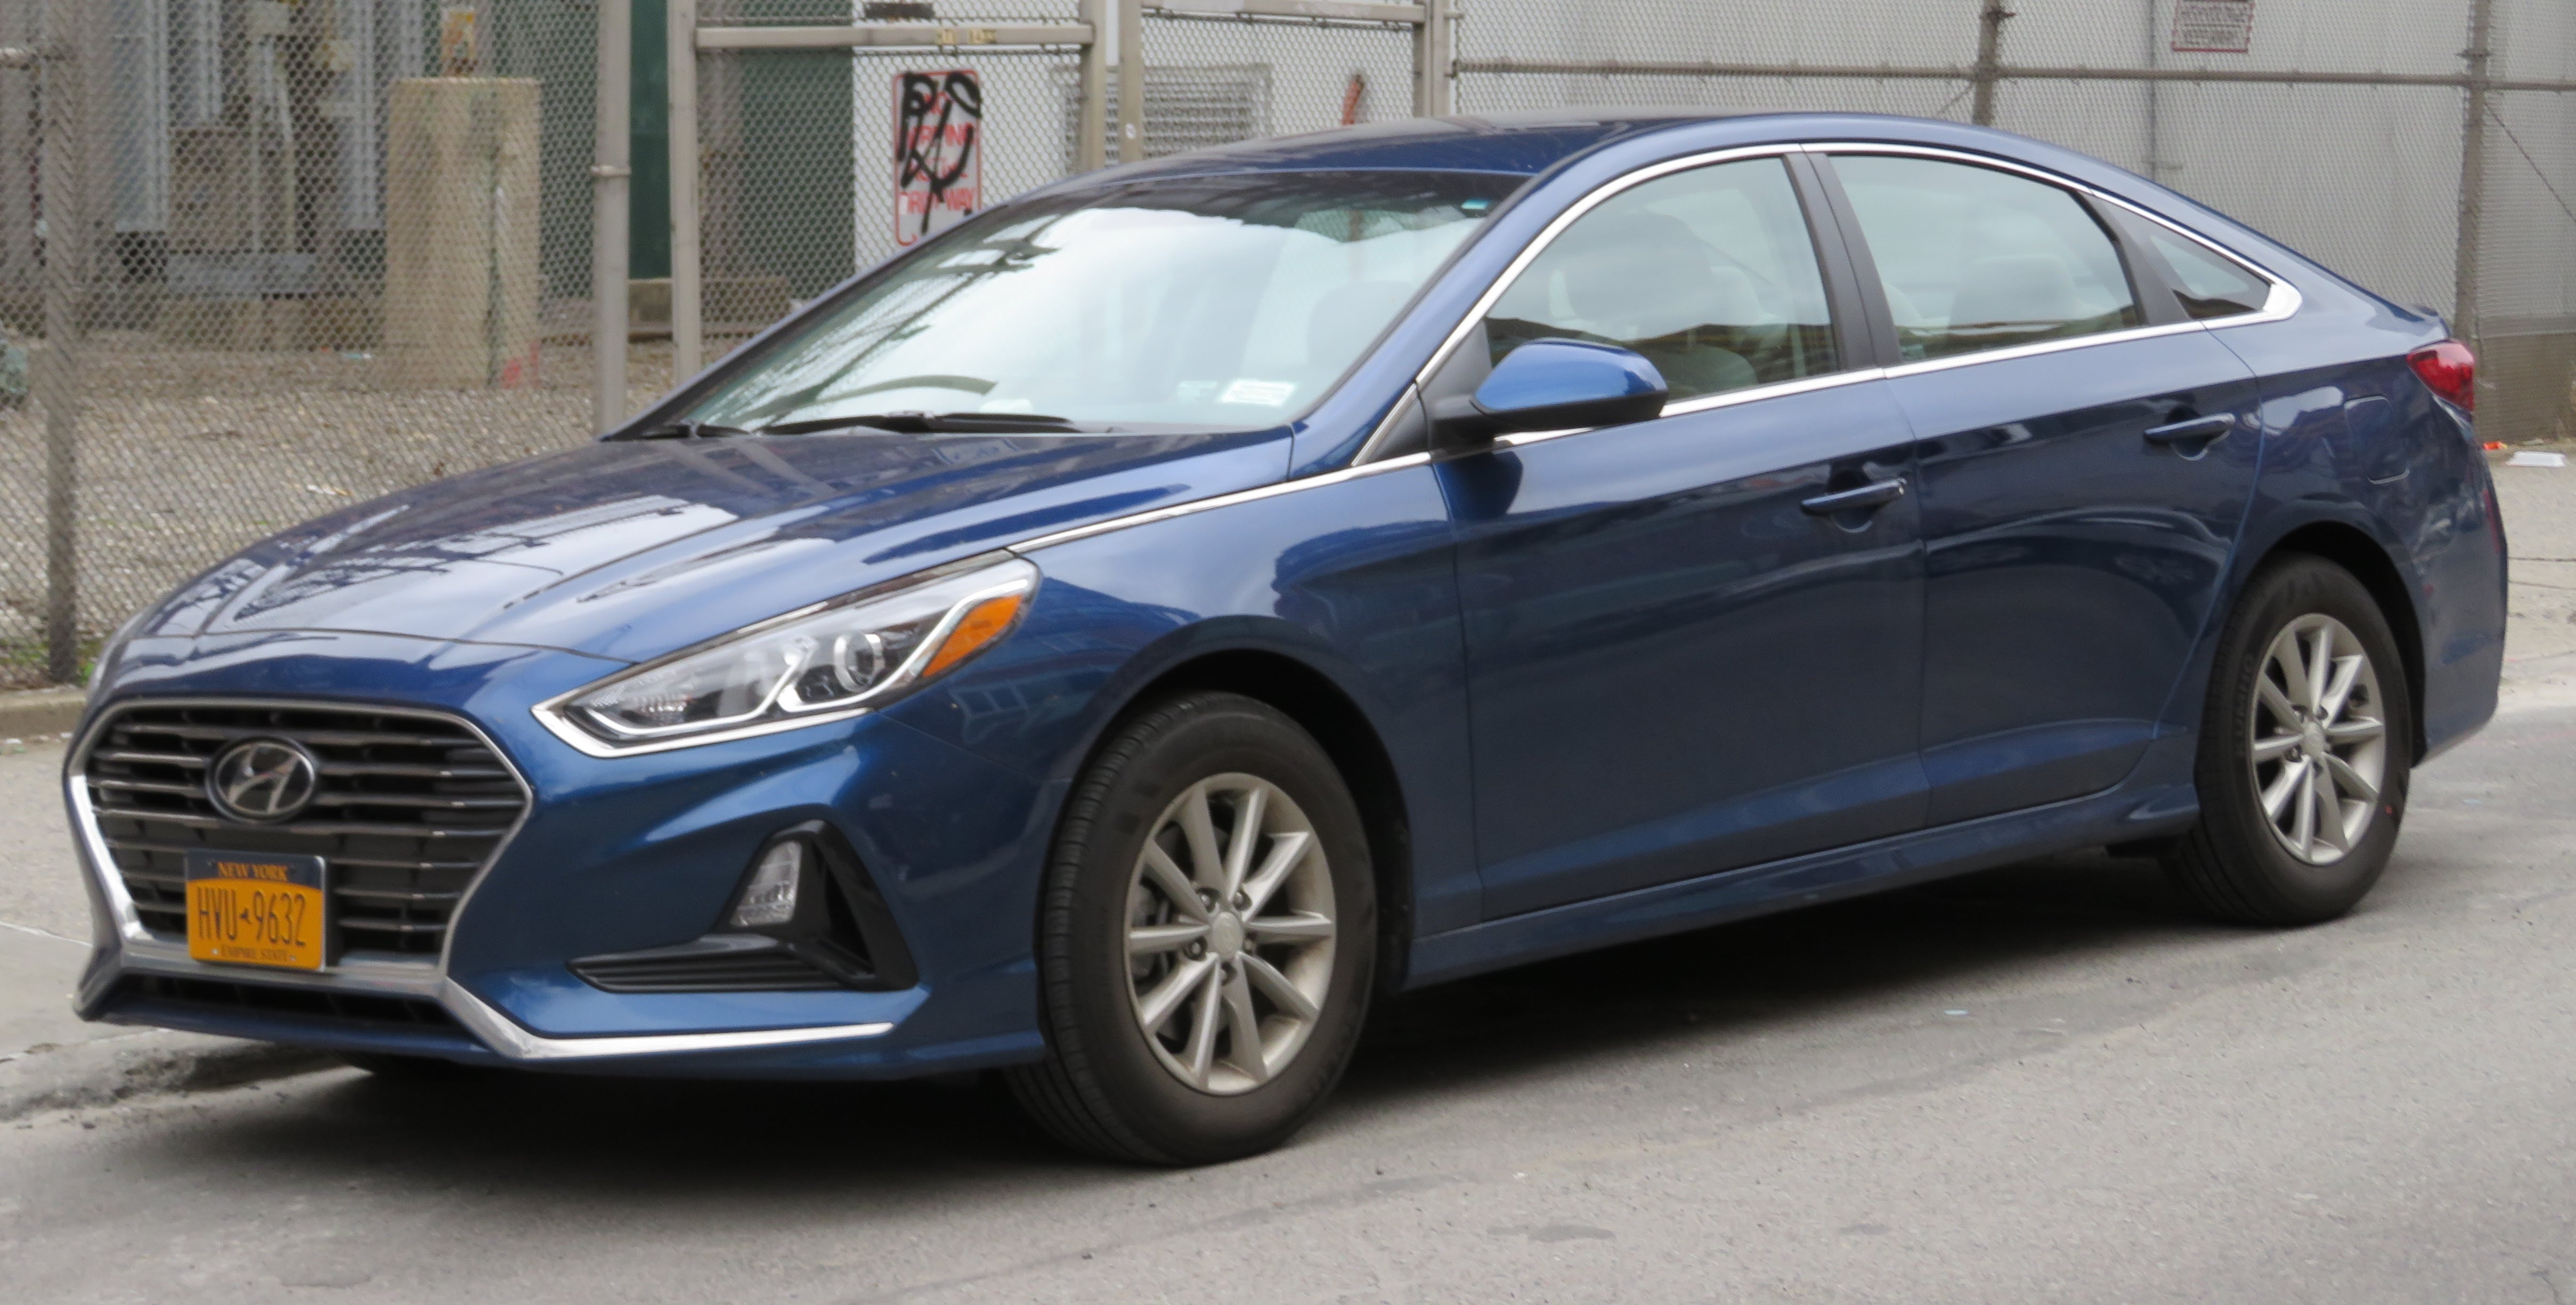 shine in veloster and elantra battery of exterior year canadian awards the car hyundai